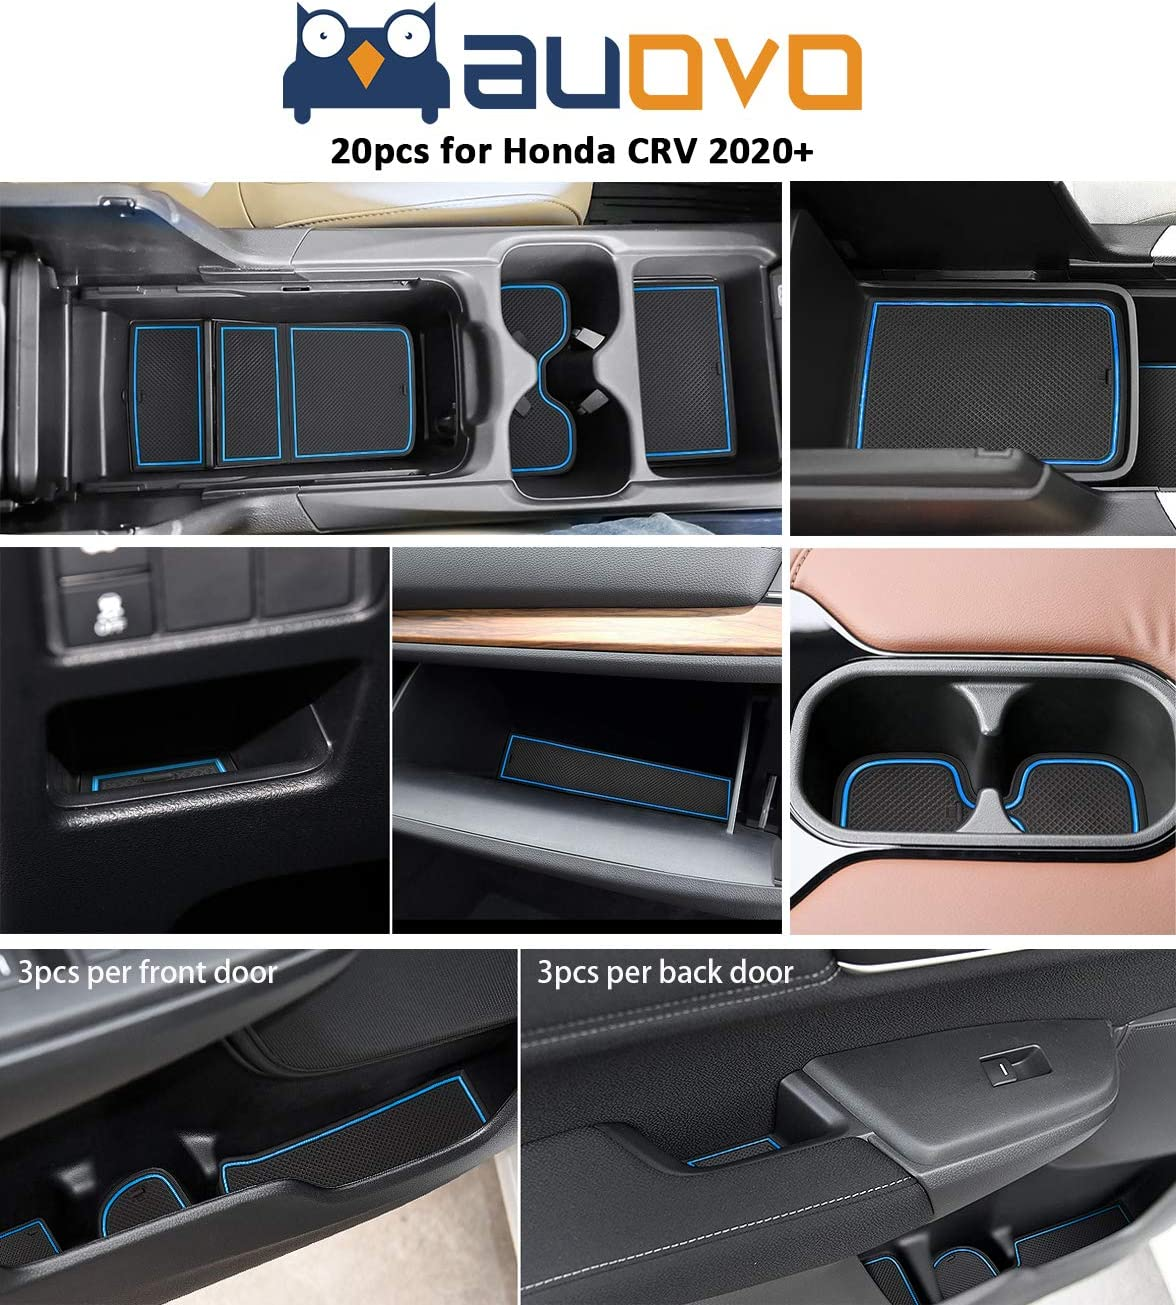 Auovo 20pcs Anti Dust Mats for 2020-2021 Honda CR-V//CRV Accessories Premium Custom Non-Slip Car Cup Holder Inserts Center Console Liner Door Pocket Liners Interior Black Trim